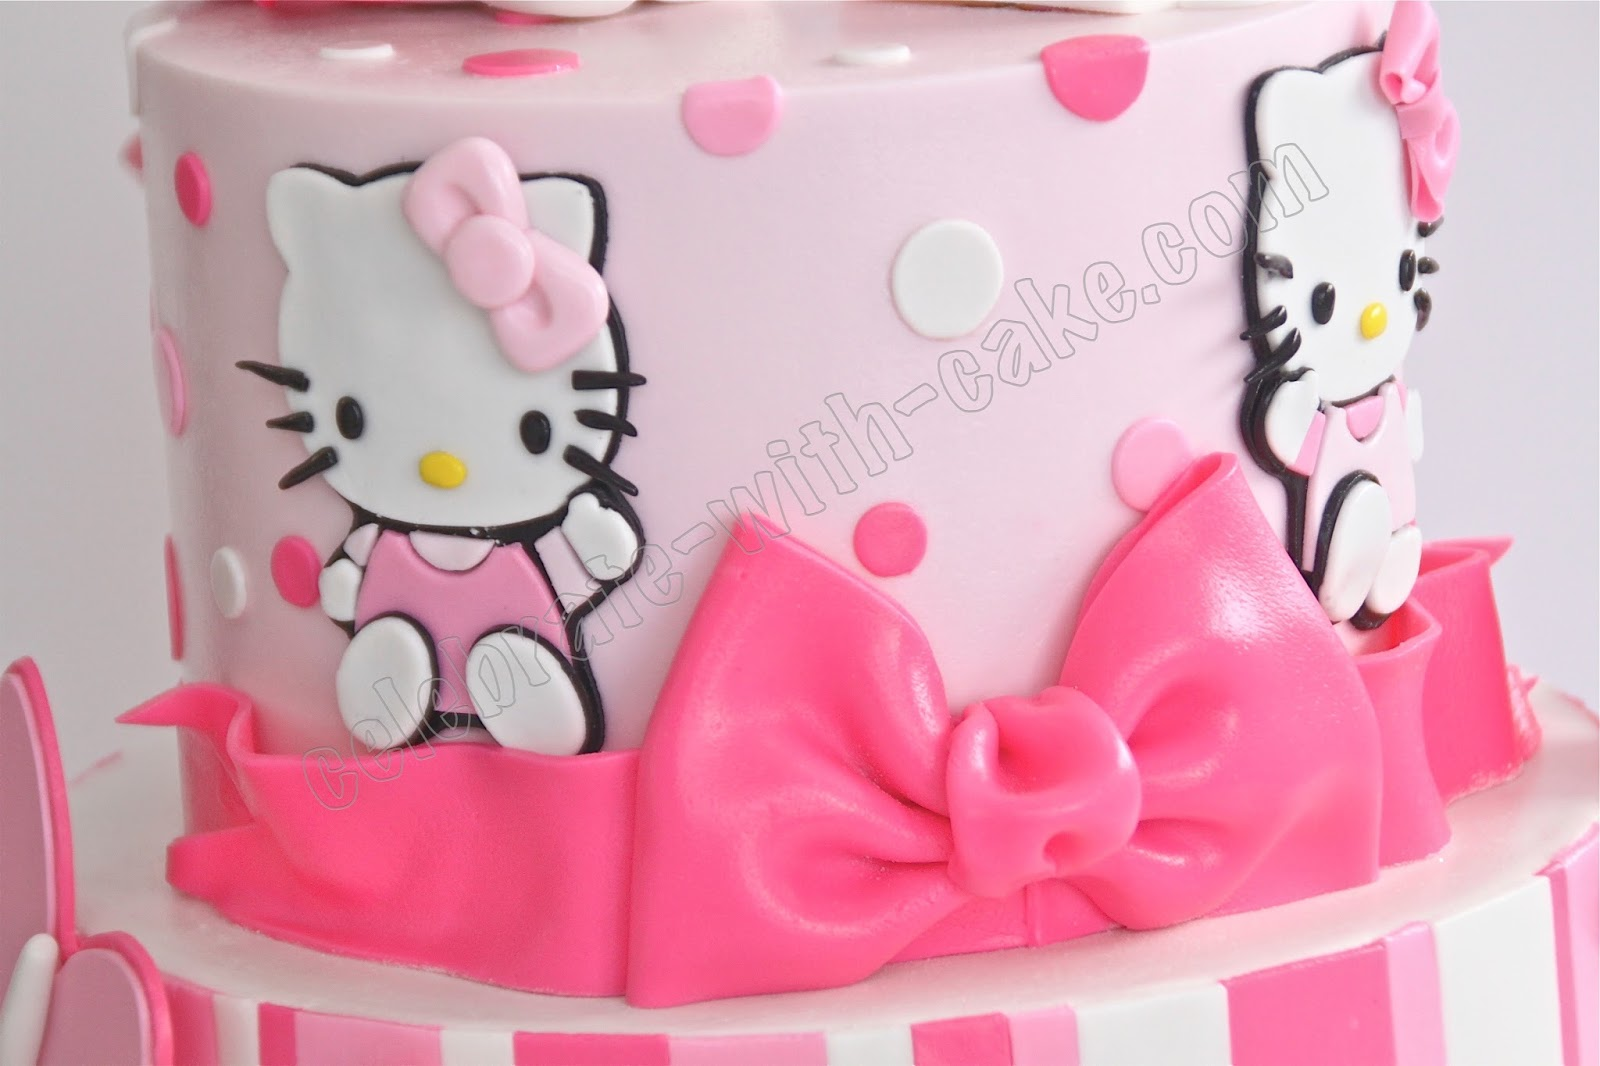 Celebrate With Cake 1st Birthday Hello Kitty Tier Cake